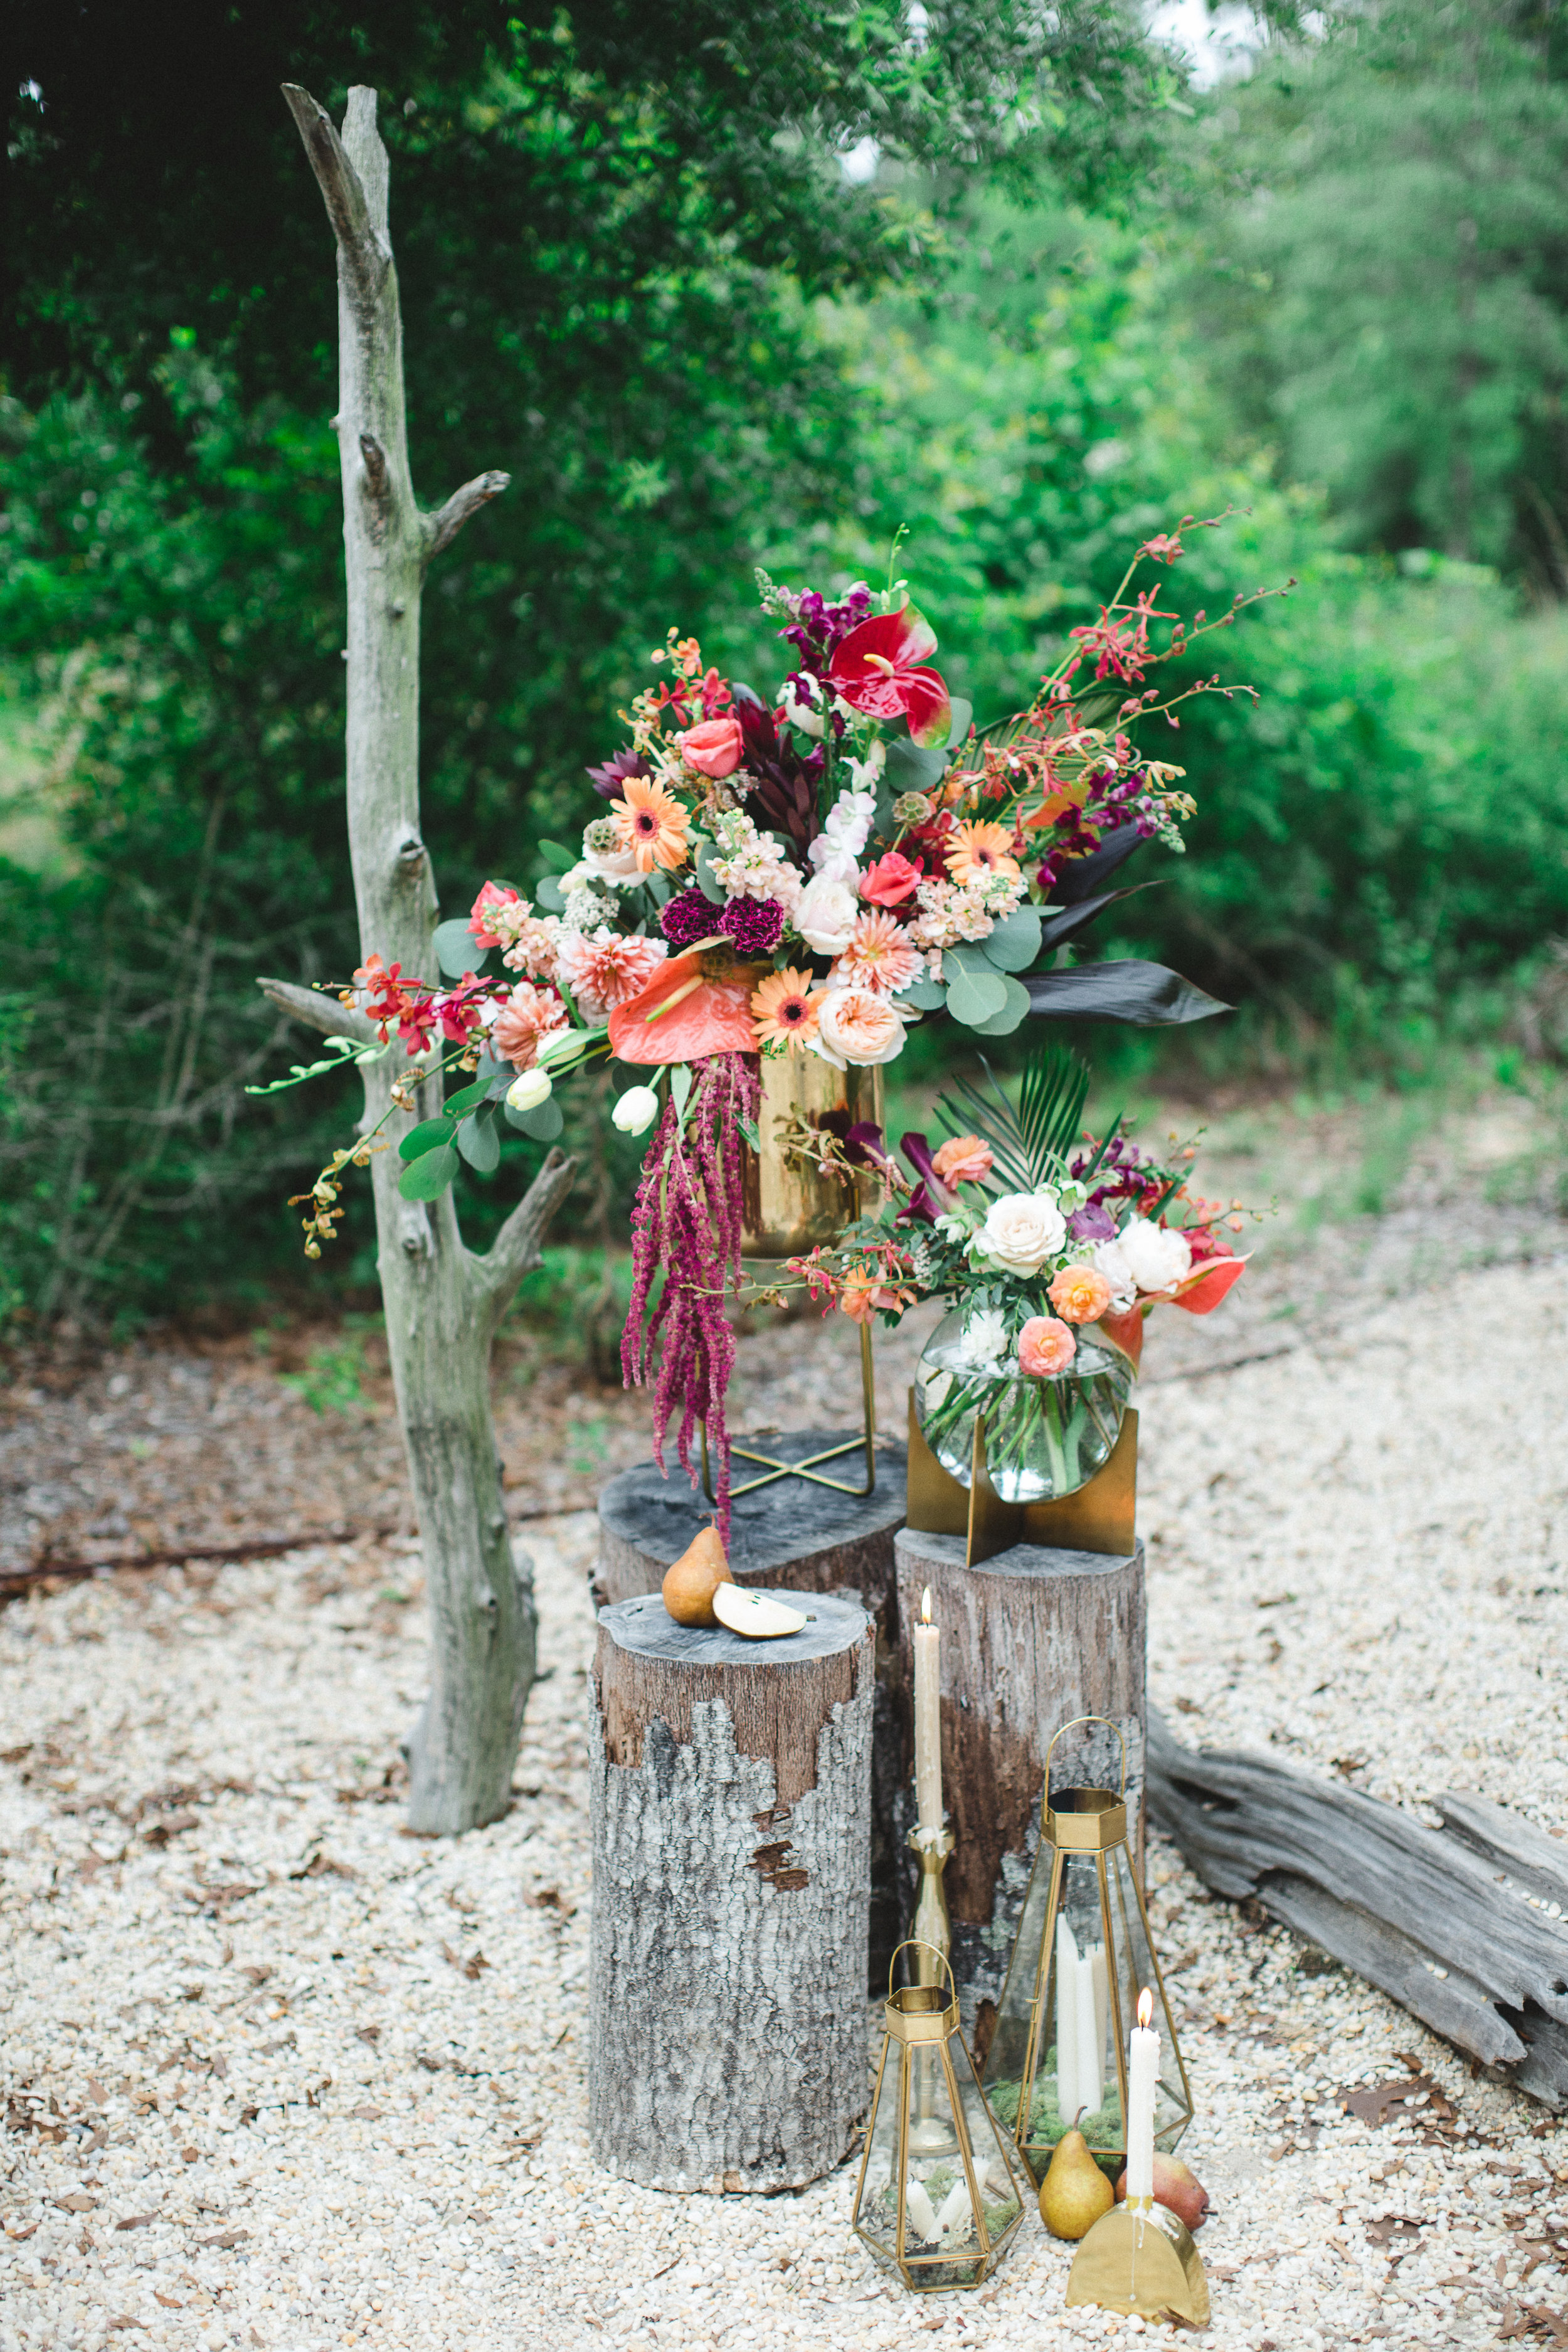 izzy-hudgins-photography-emily-burton-designs-ivory-and-beau-bridal-boutique-daughters-of-simone-sonje-jenny-yoo-bridesmaids-glamping-wedding-boho-wedding-outdoor-wedding-coldwater-gardens-wedding-savannah-bridal-boutique-savannah-wedding-planner-22.jpg